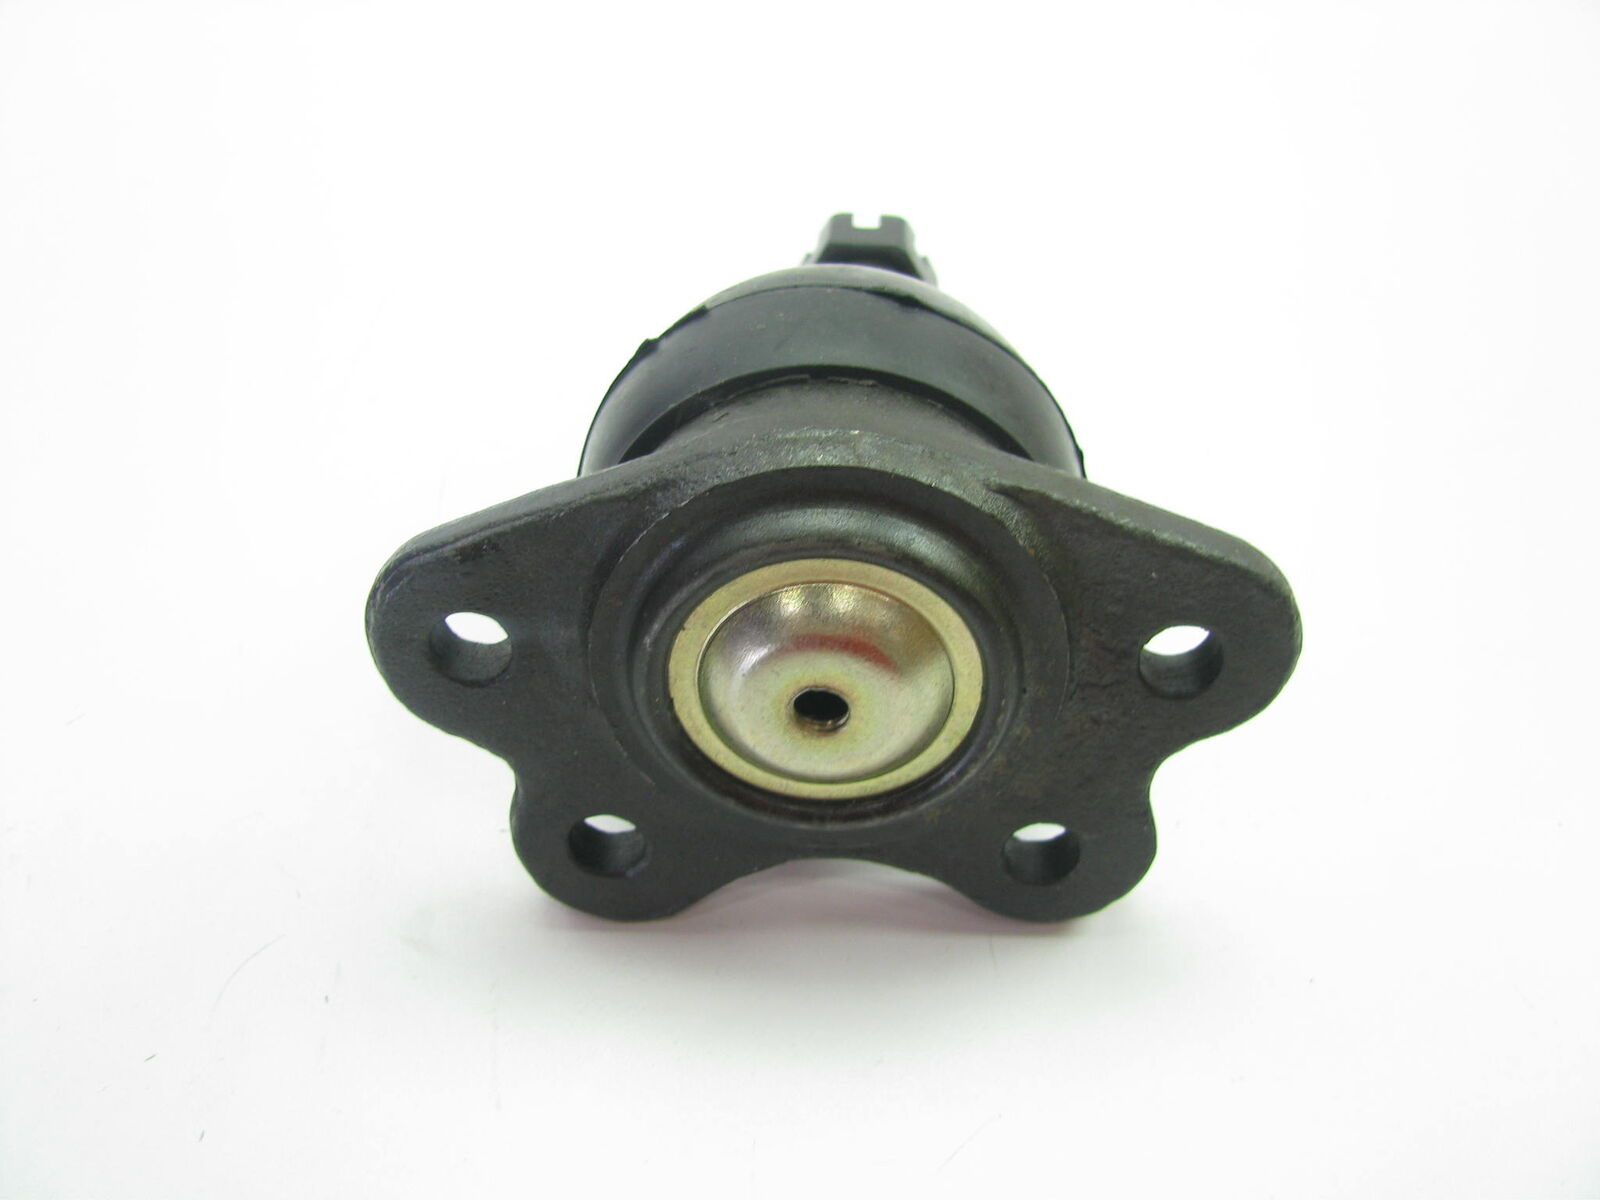 Avid Ak6292 Front Upper Suspension Ball Joint Ebay Gmc Envoy Norton Secured Powered By Verisign